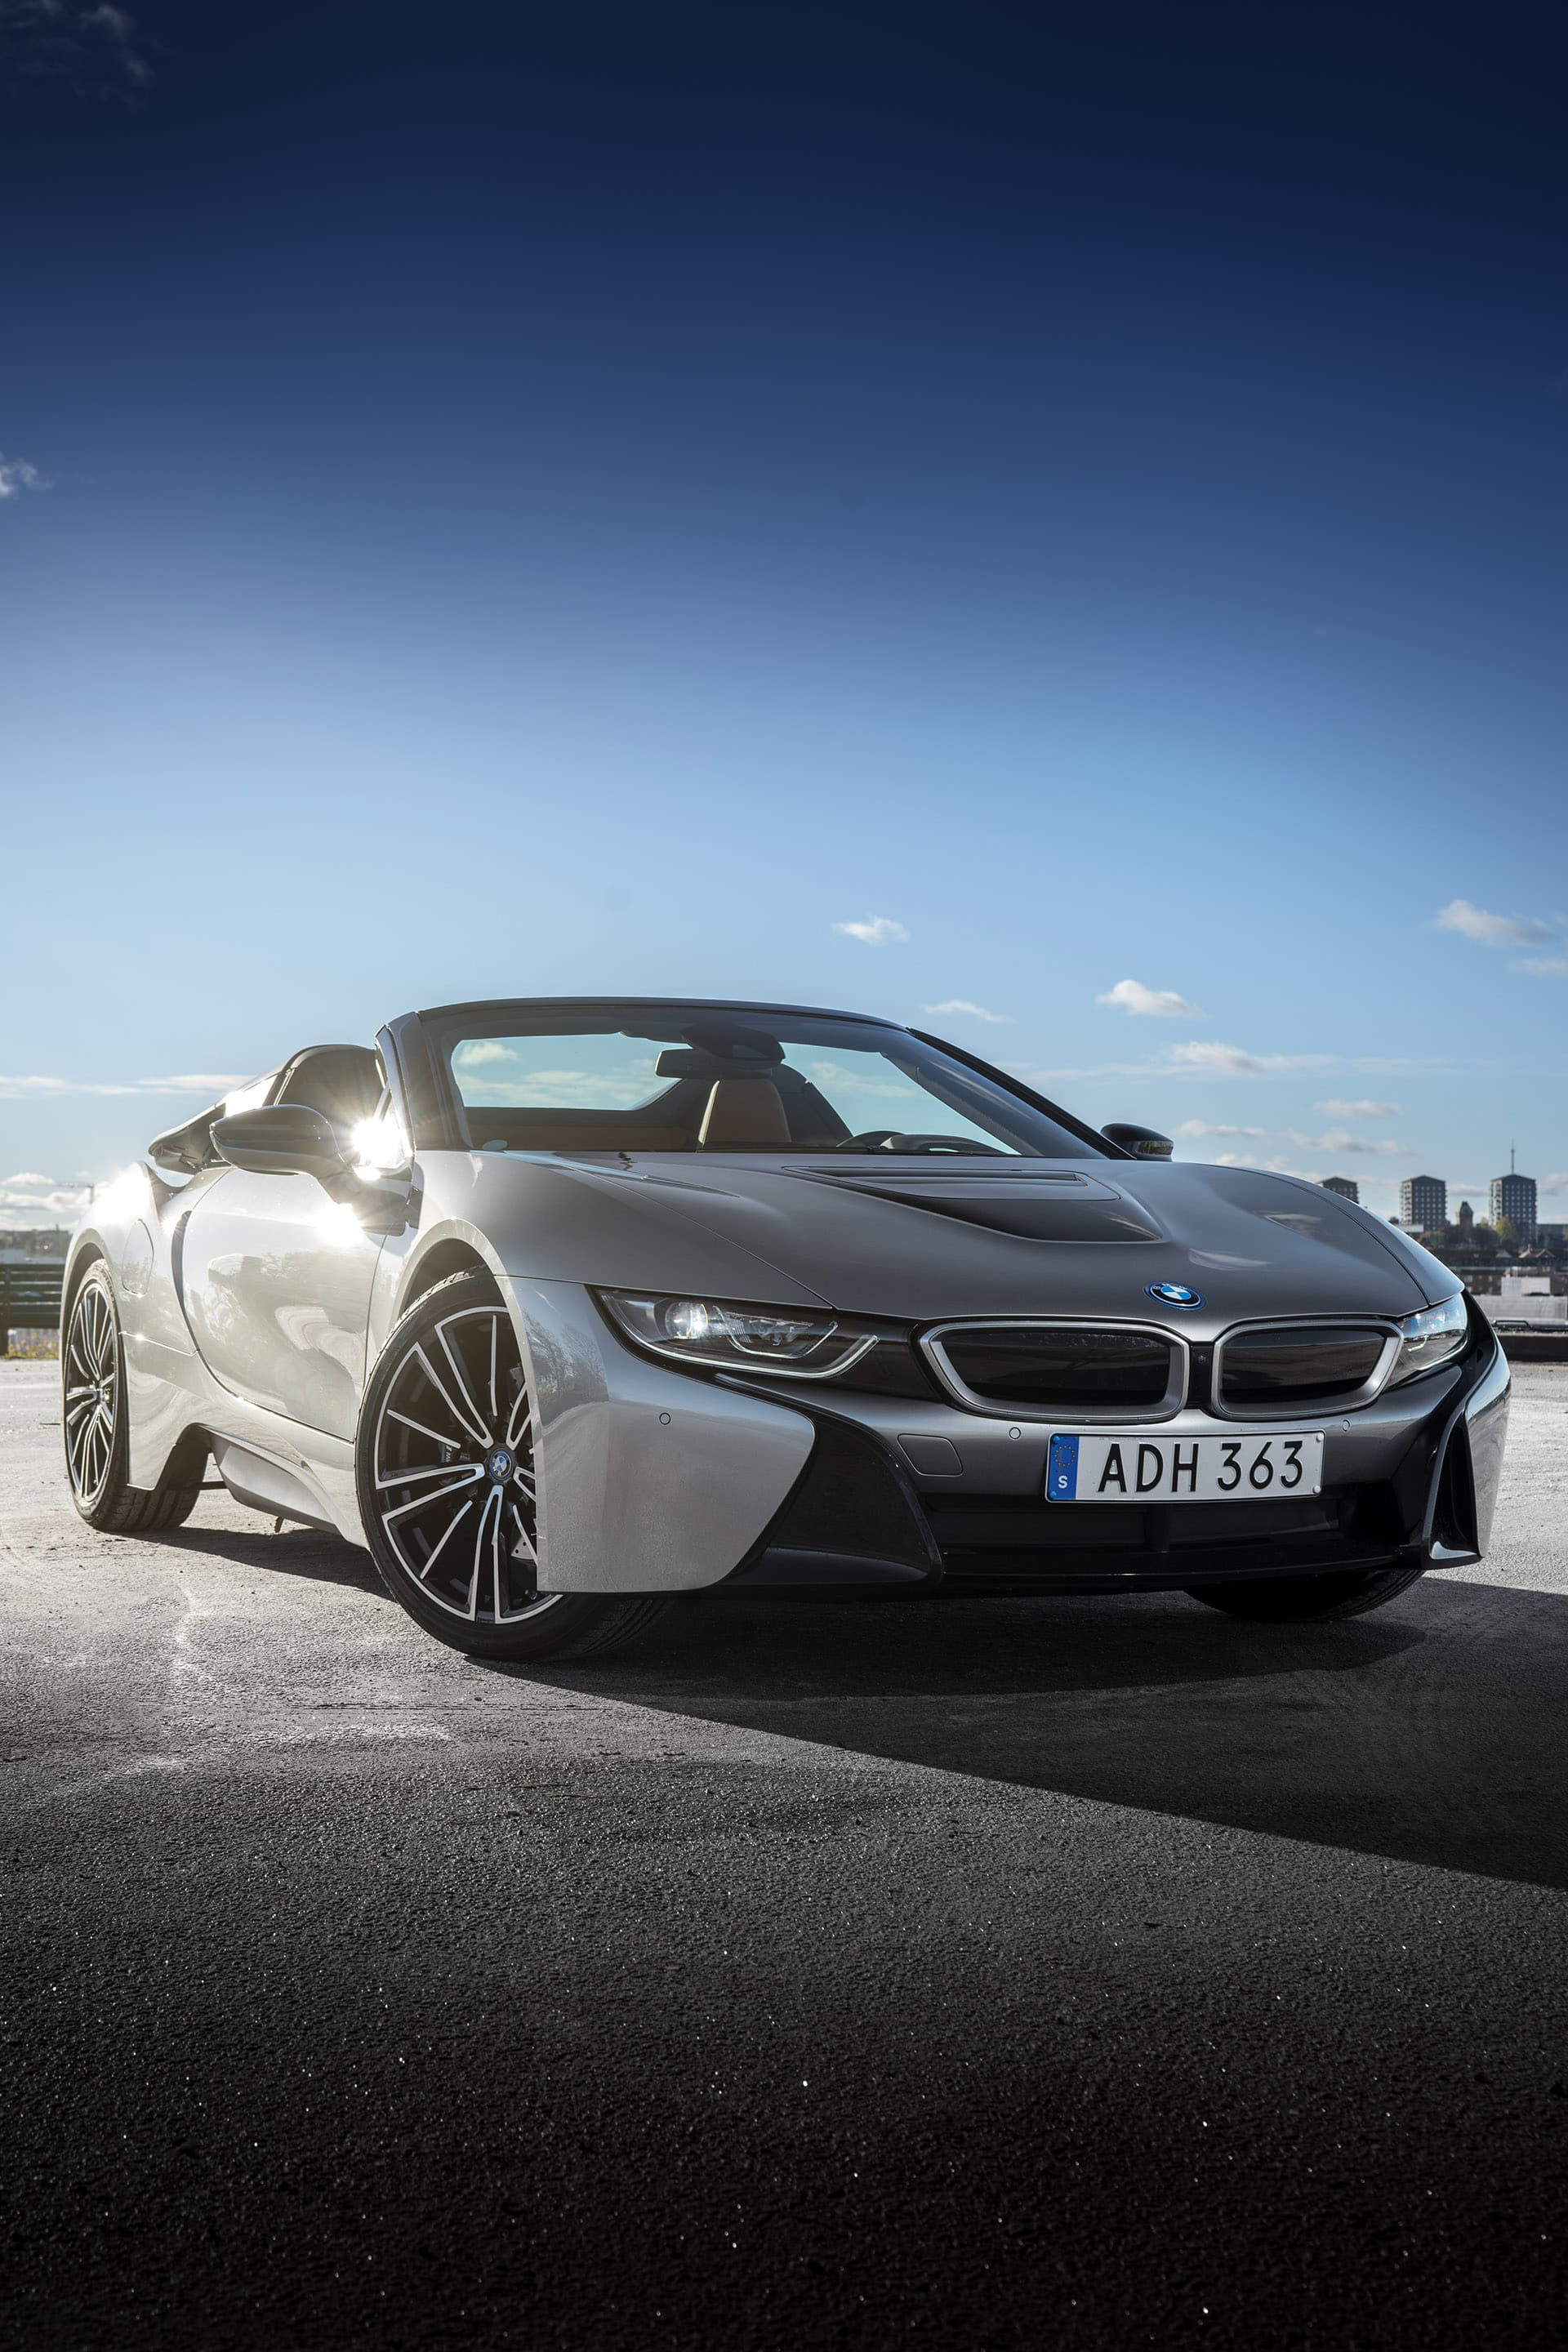 The front is low on the i8 Roadster, so the air level will be as low as possible.